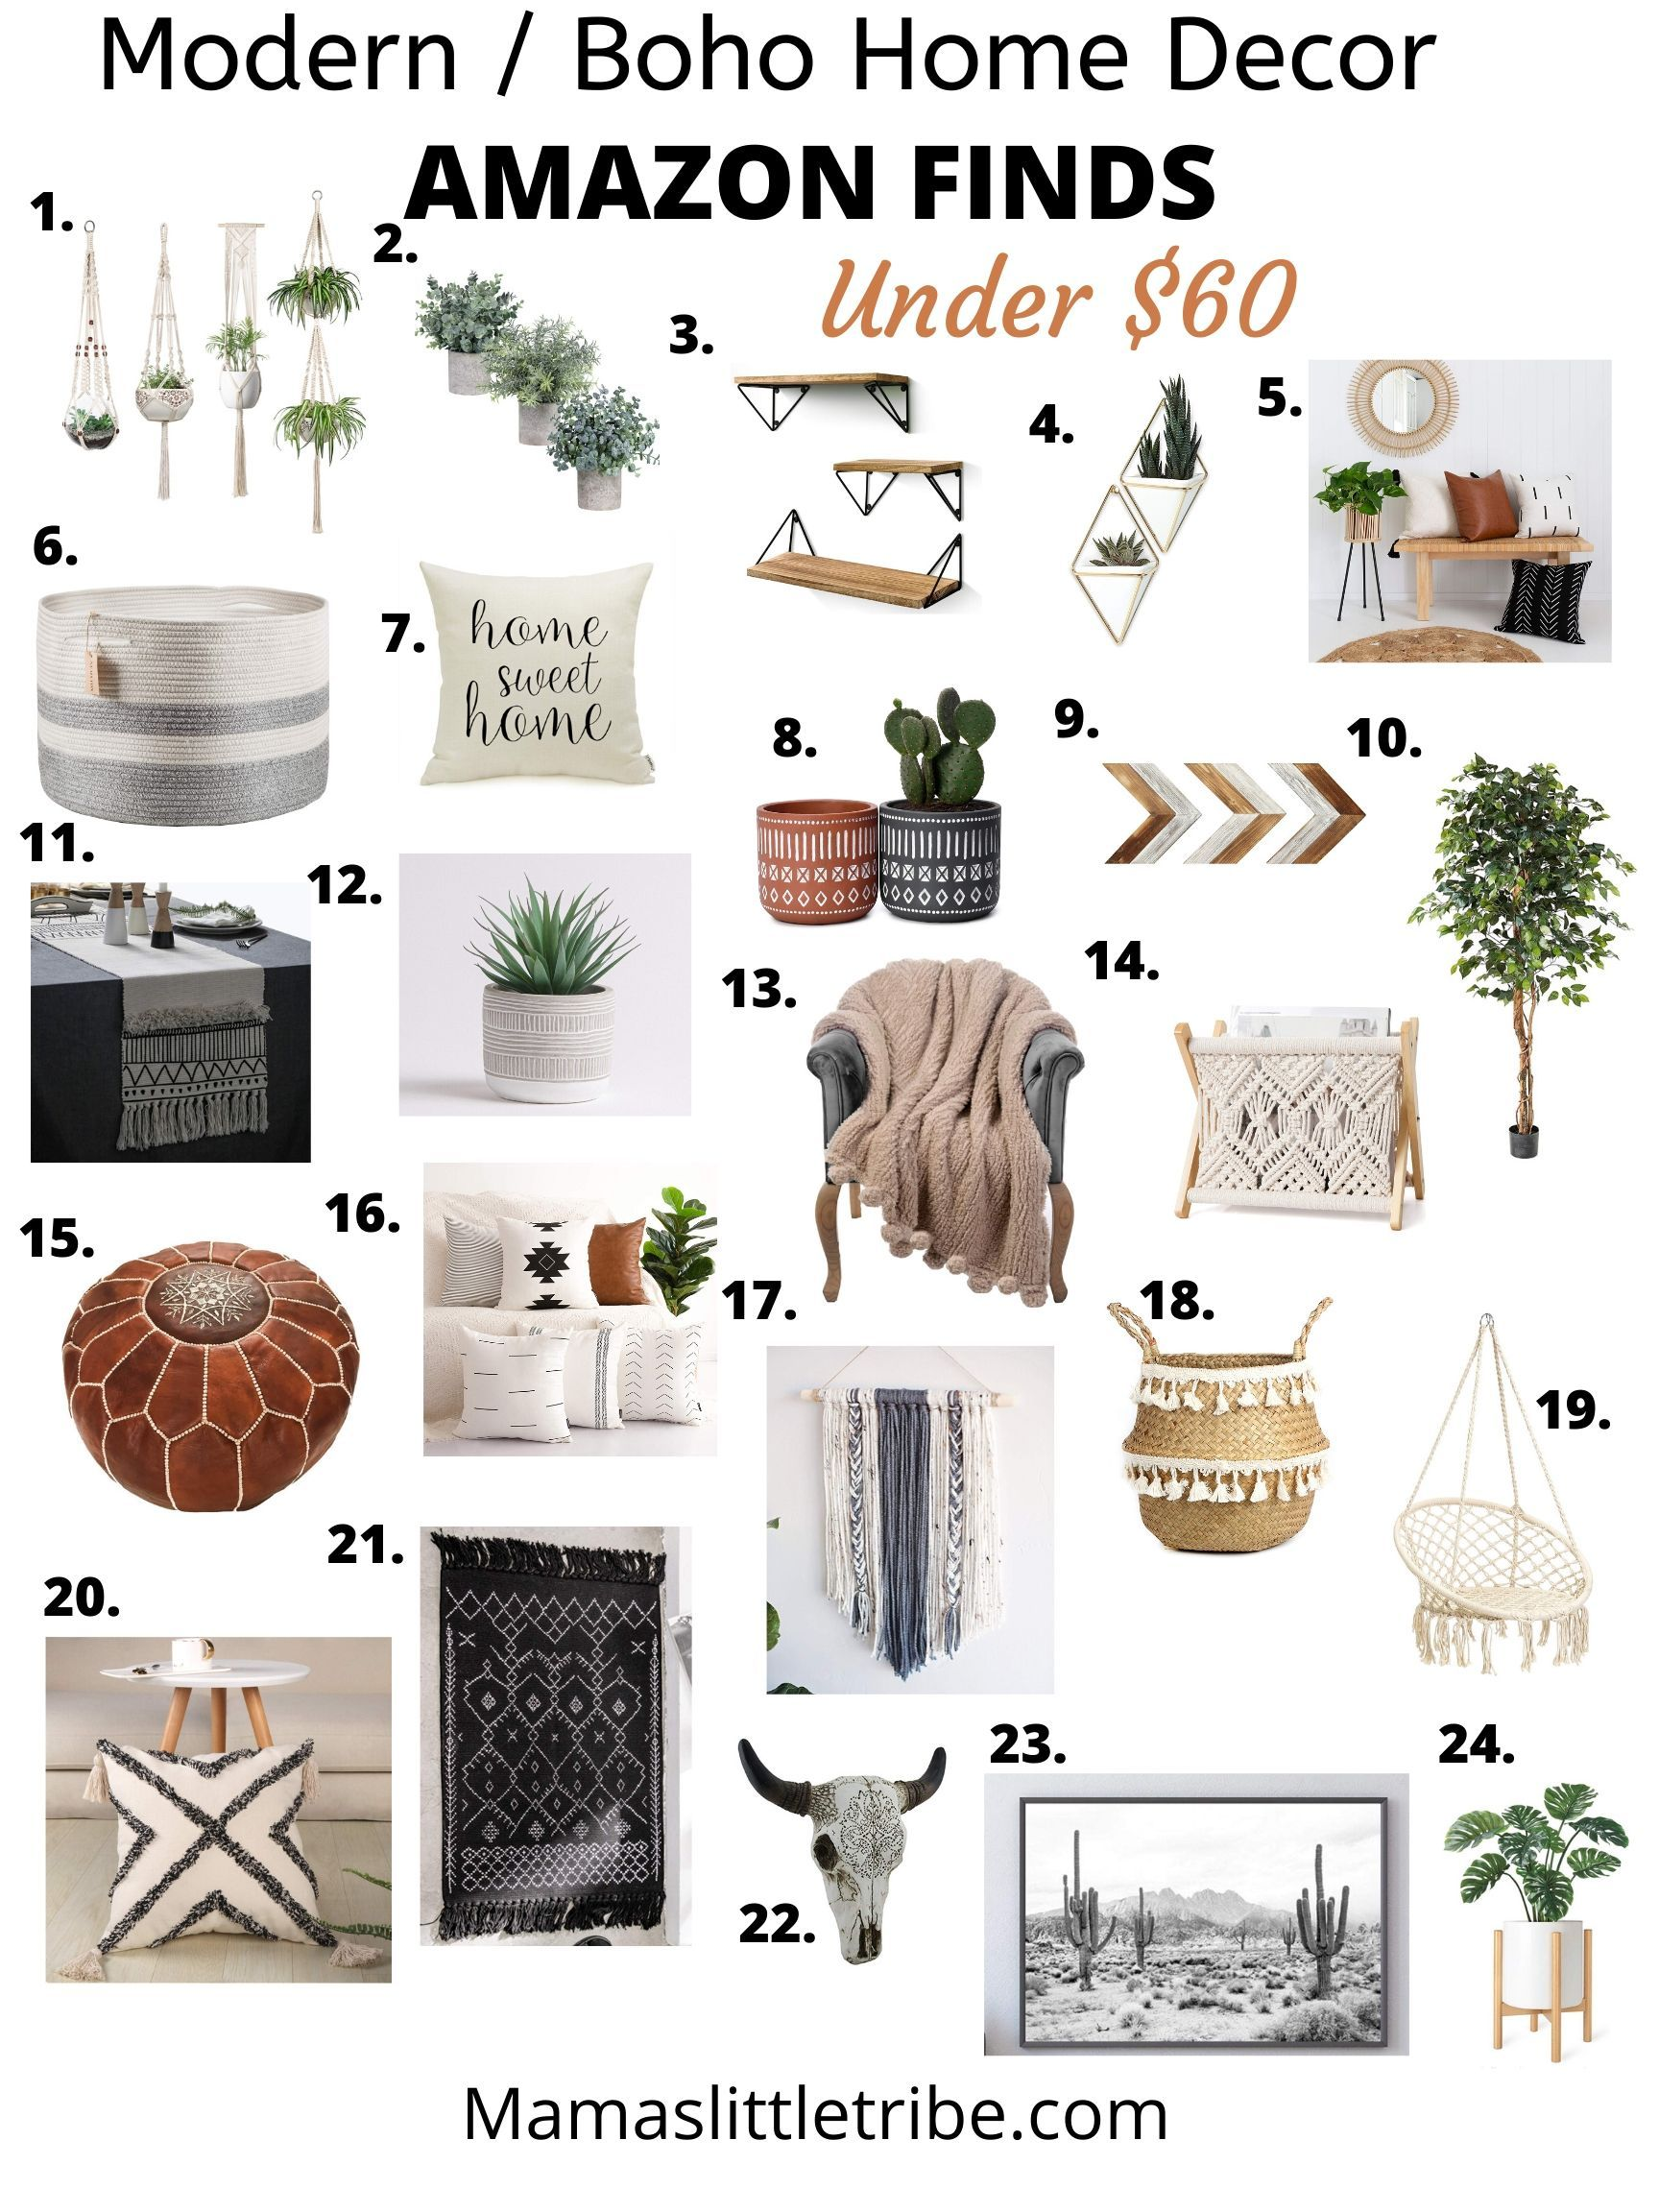 Looking for affordable Farmhouse, Modern or boho home decor I've got you covered with my amazon favorites everything under $60 . . #homedecor #homeinspiration #bohostyle #farmhouse #farmhousedecor #under60 #under50 #liketoknowit.home #liketoknowit #ltkithome #amazonfavorites #amazonhome #modernhomedecor